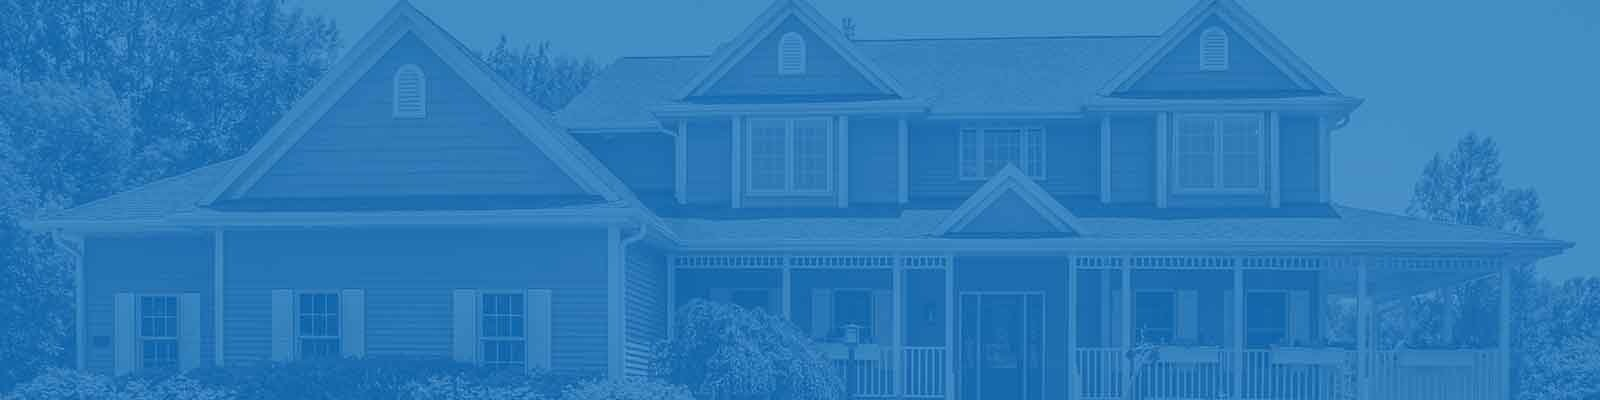 Ready to Have Brothers Better Insulate Your Home? ~ Request A Consultation